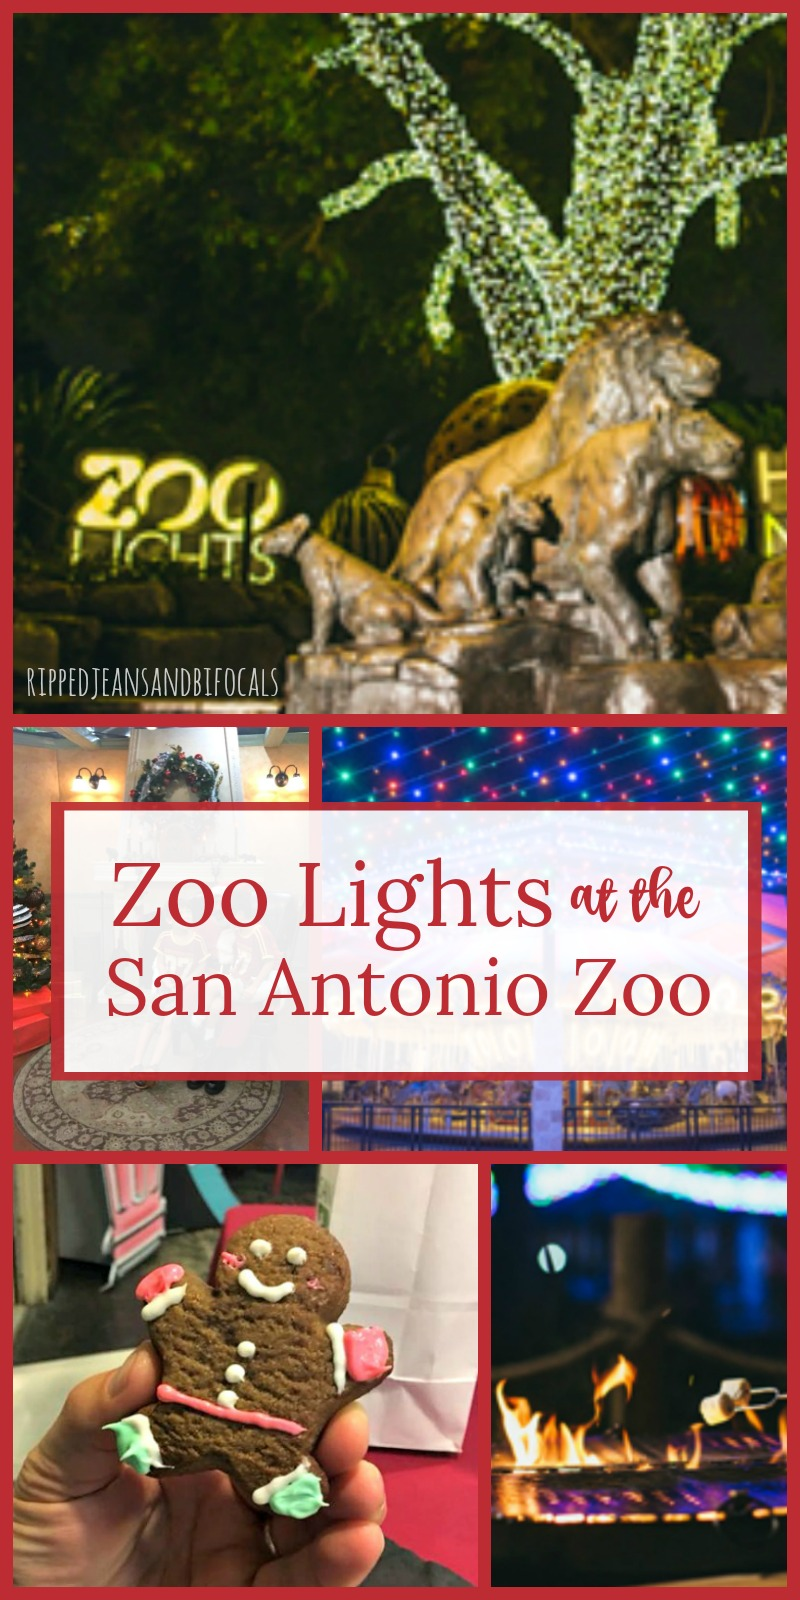 Zoo Lights at the San Antonio Zoo 2017|Ripped Jeans and Bifocals